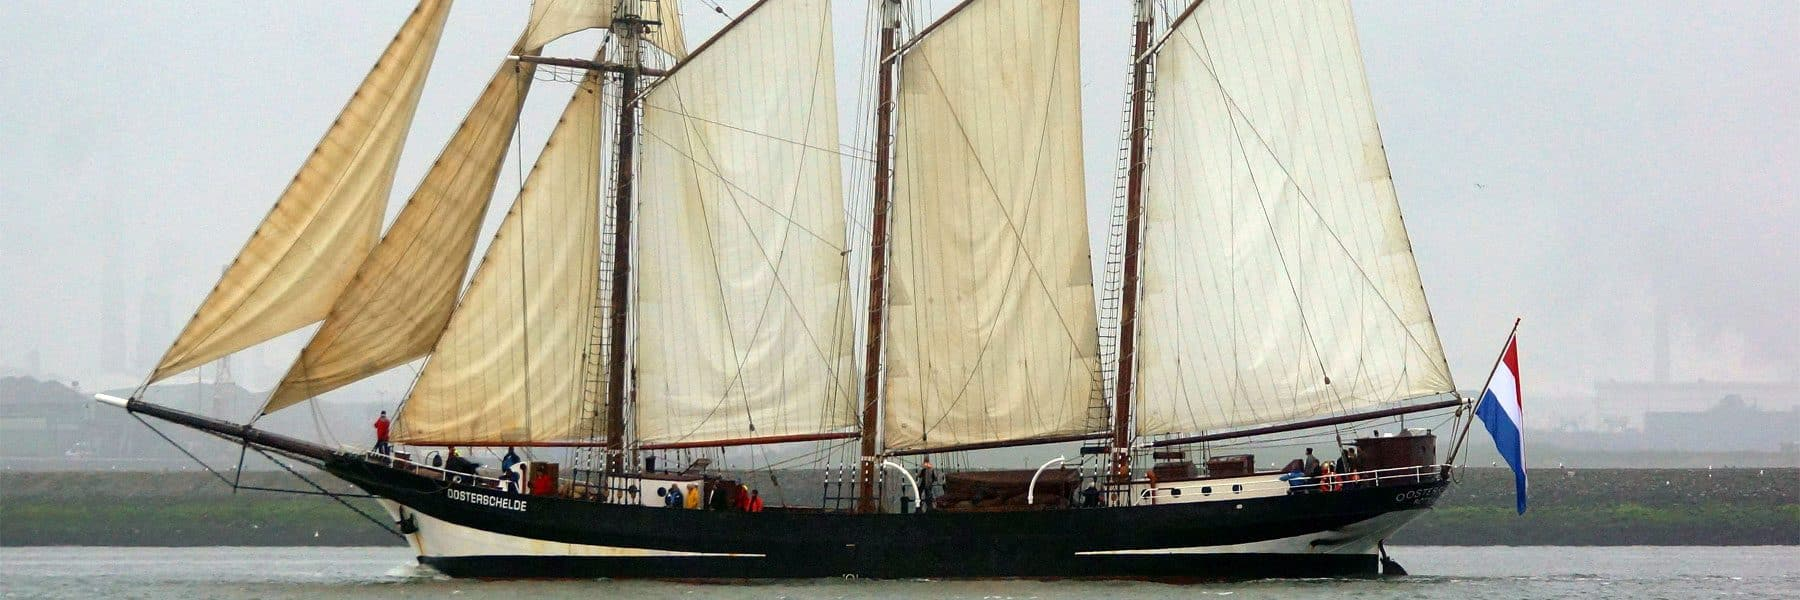 Tall Ship Oosterschelde